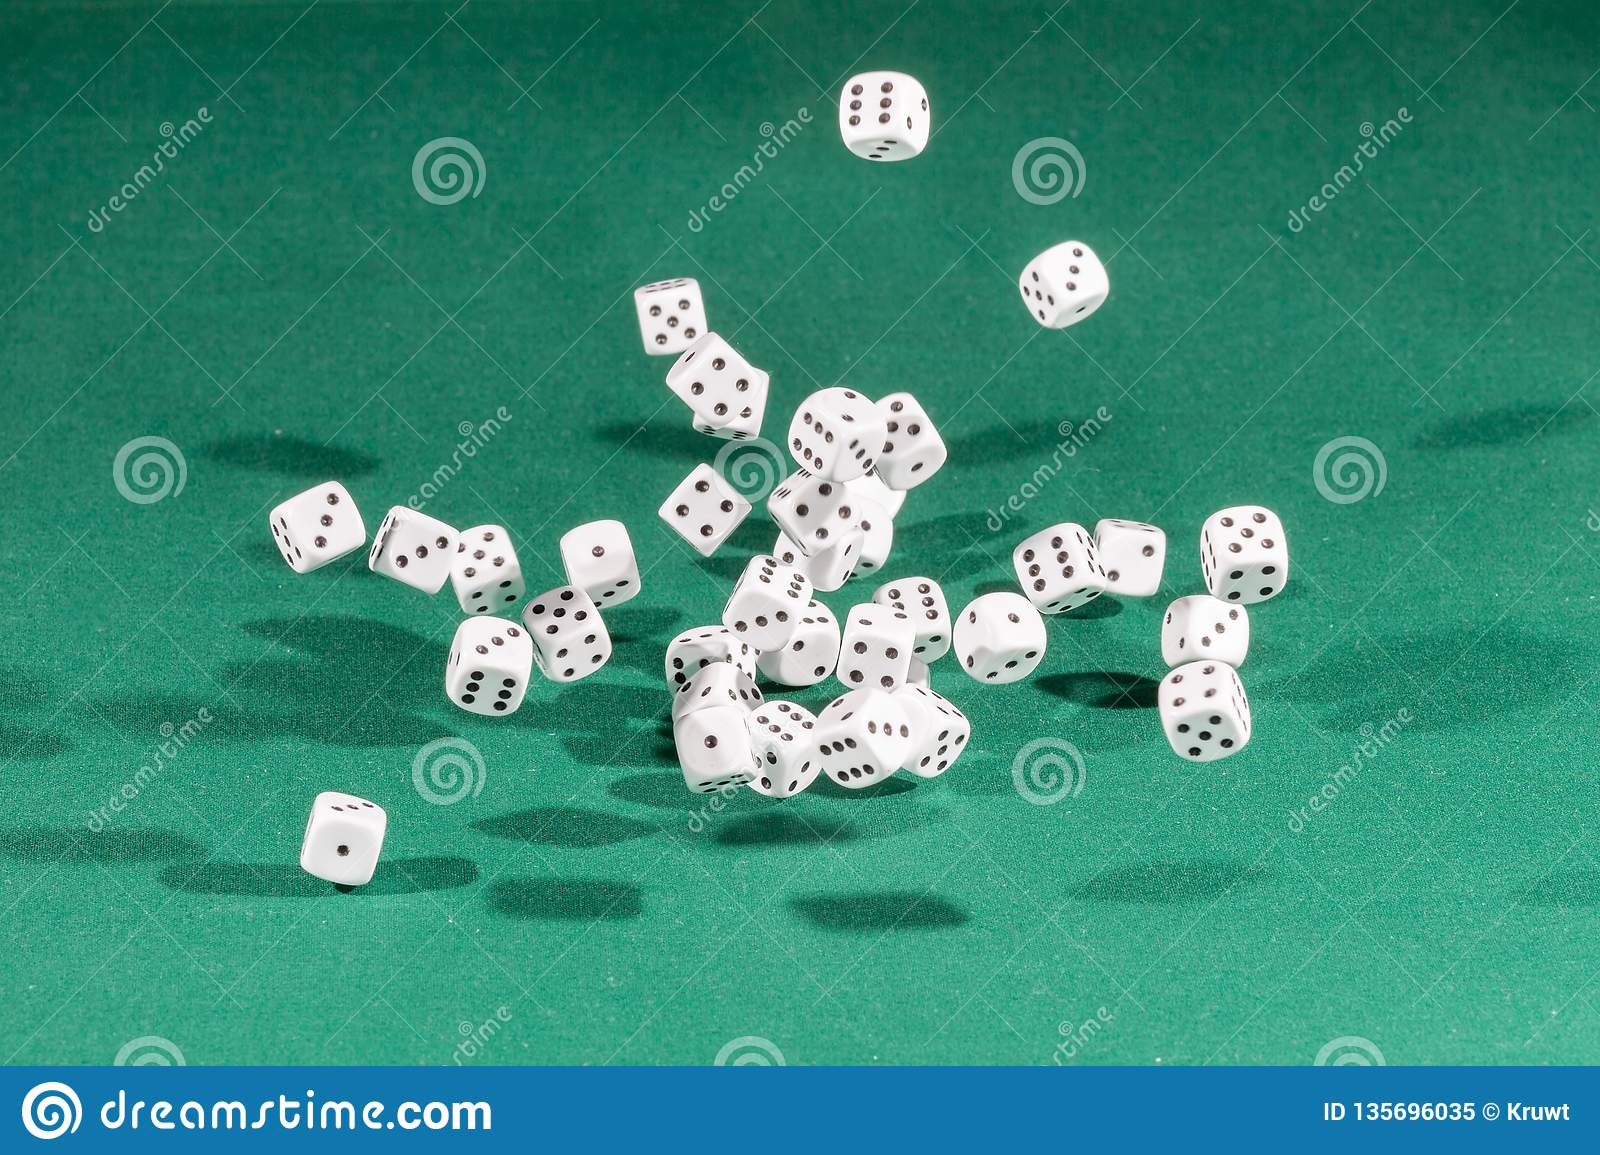 Thirty white dices falling on a green table